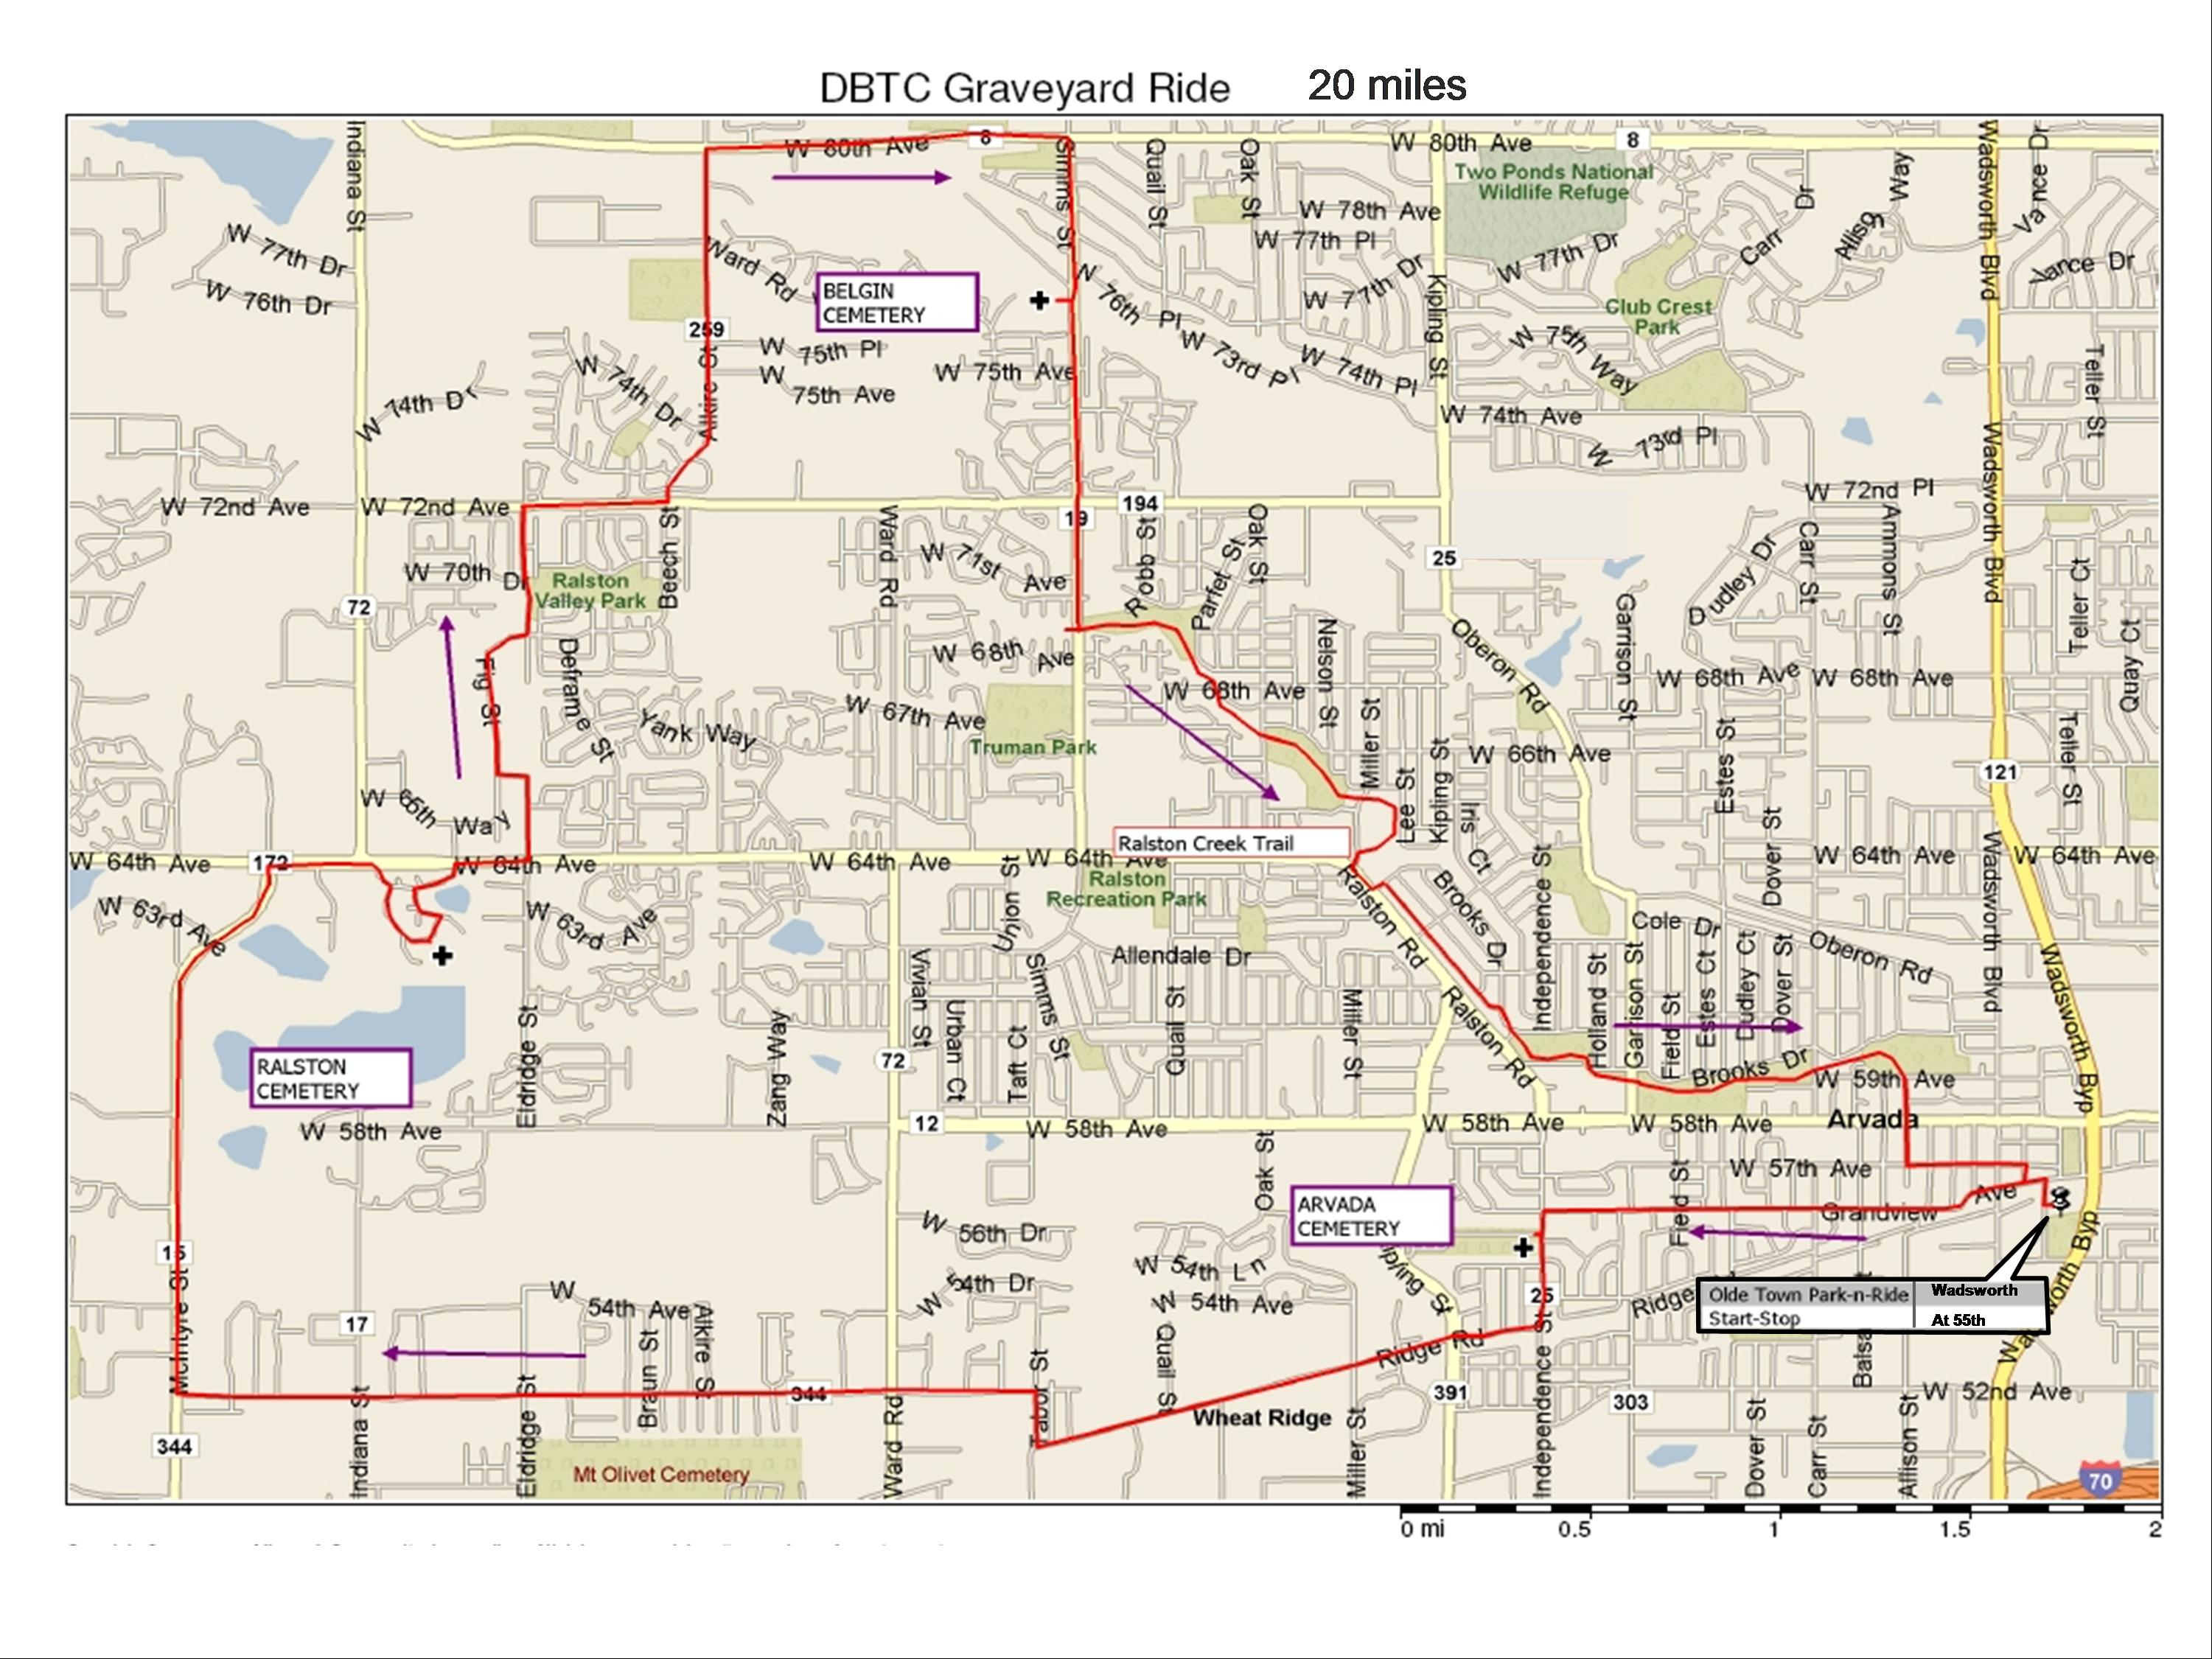 Denver Bicycle Touring Club Inc Route Map Library